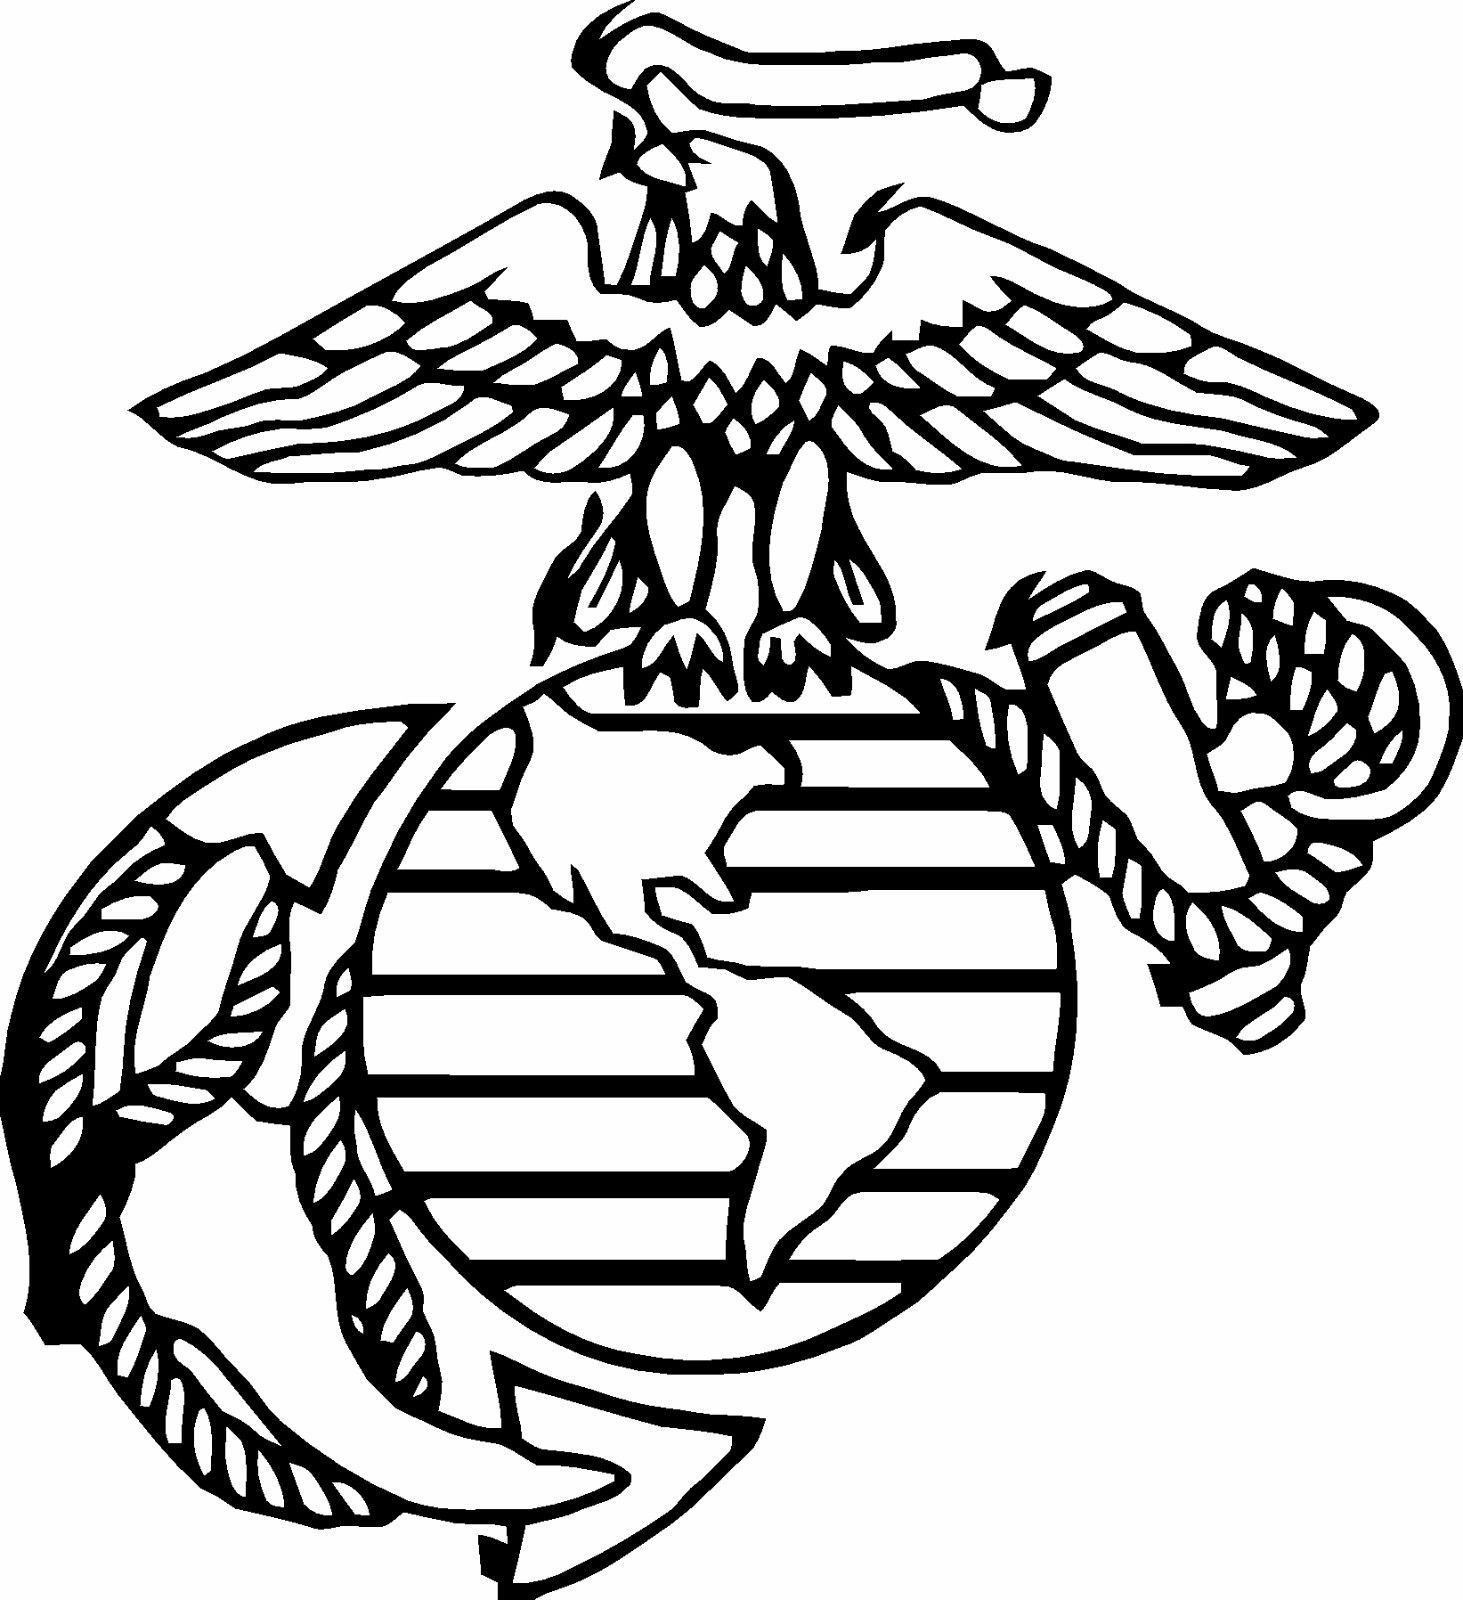 Marine U.S.M.C NAVY Seal Military Insignia Vinyl Decal Sticker